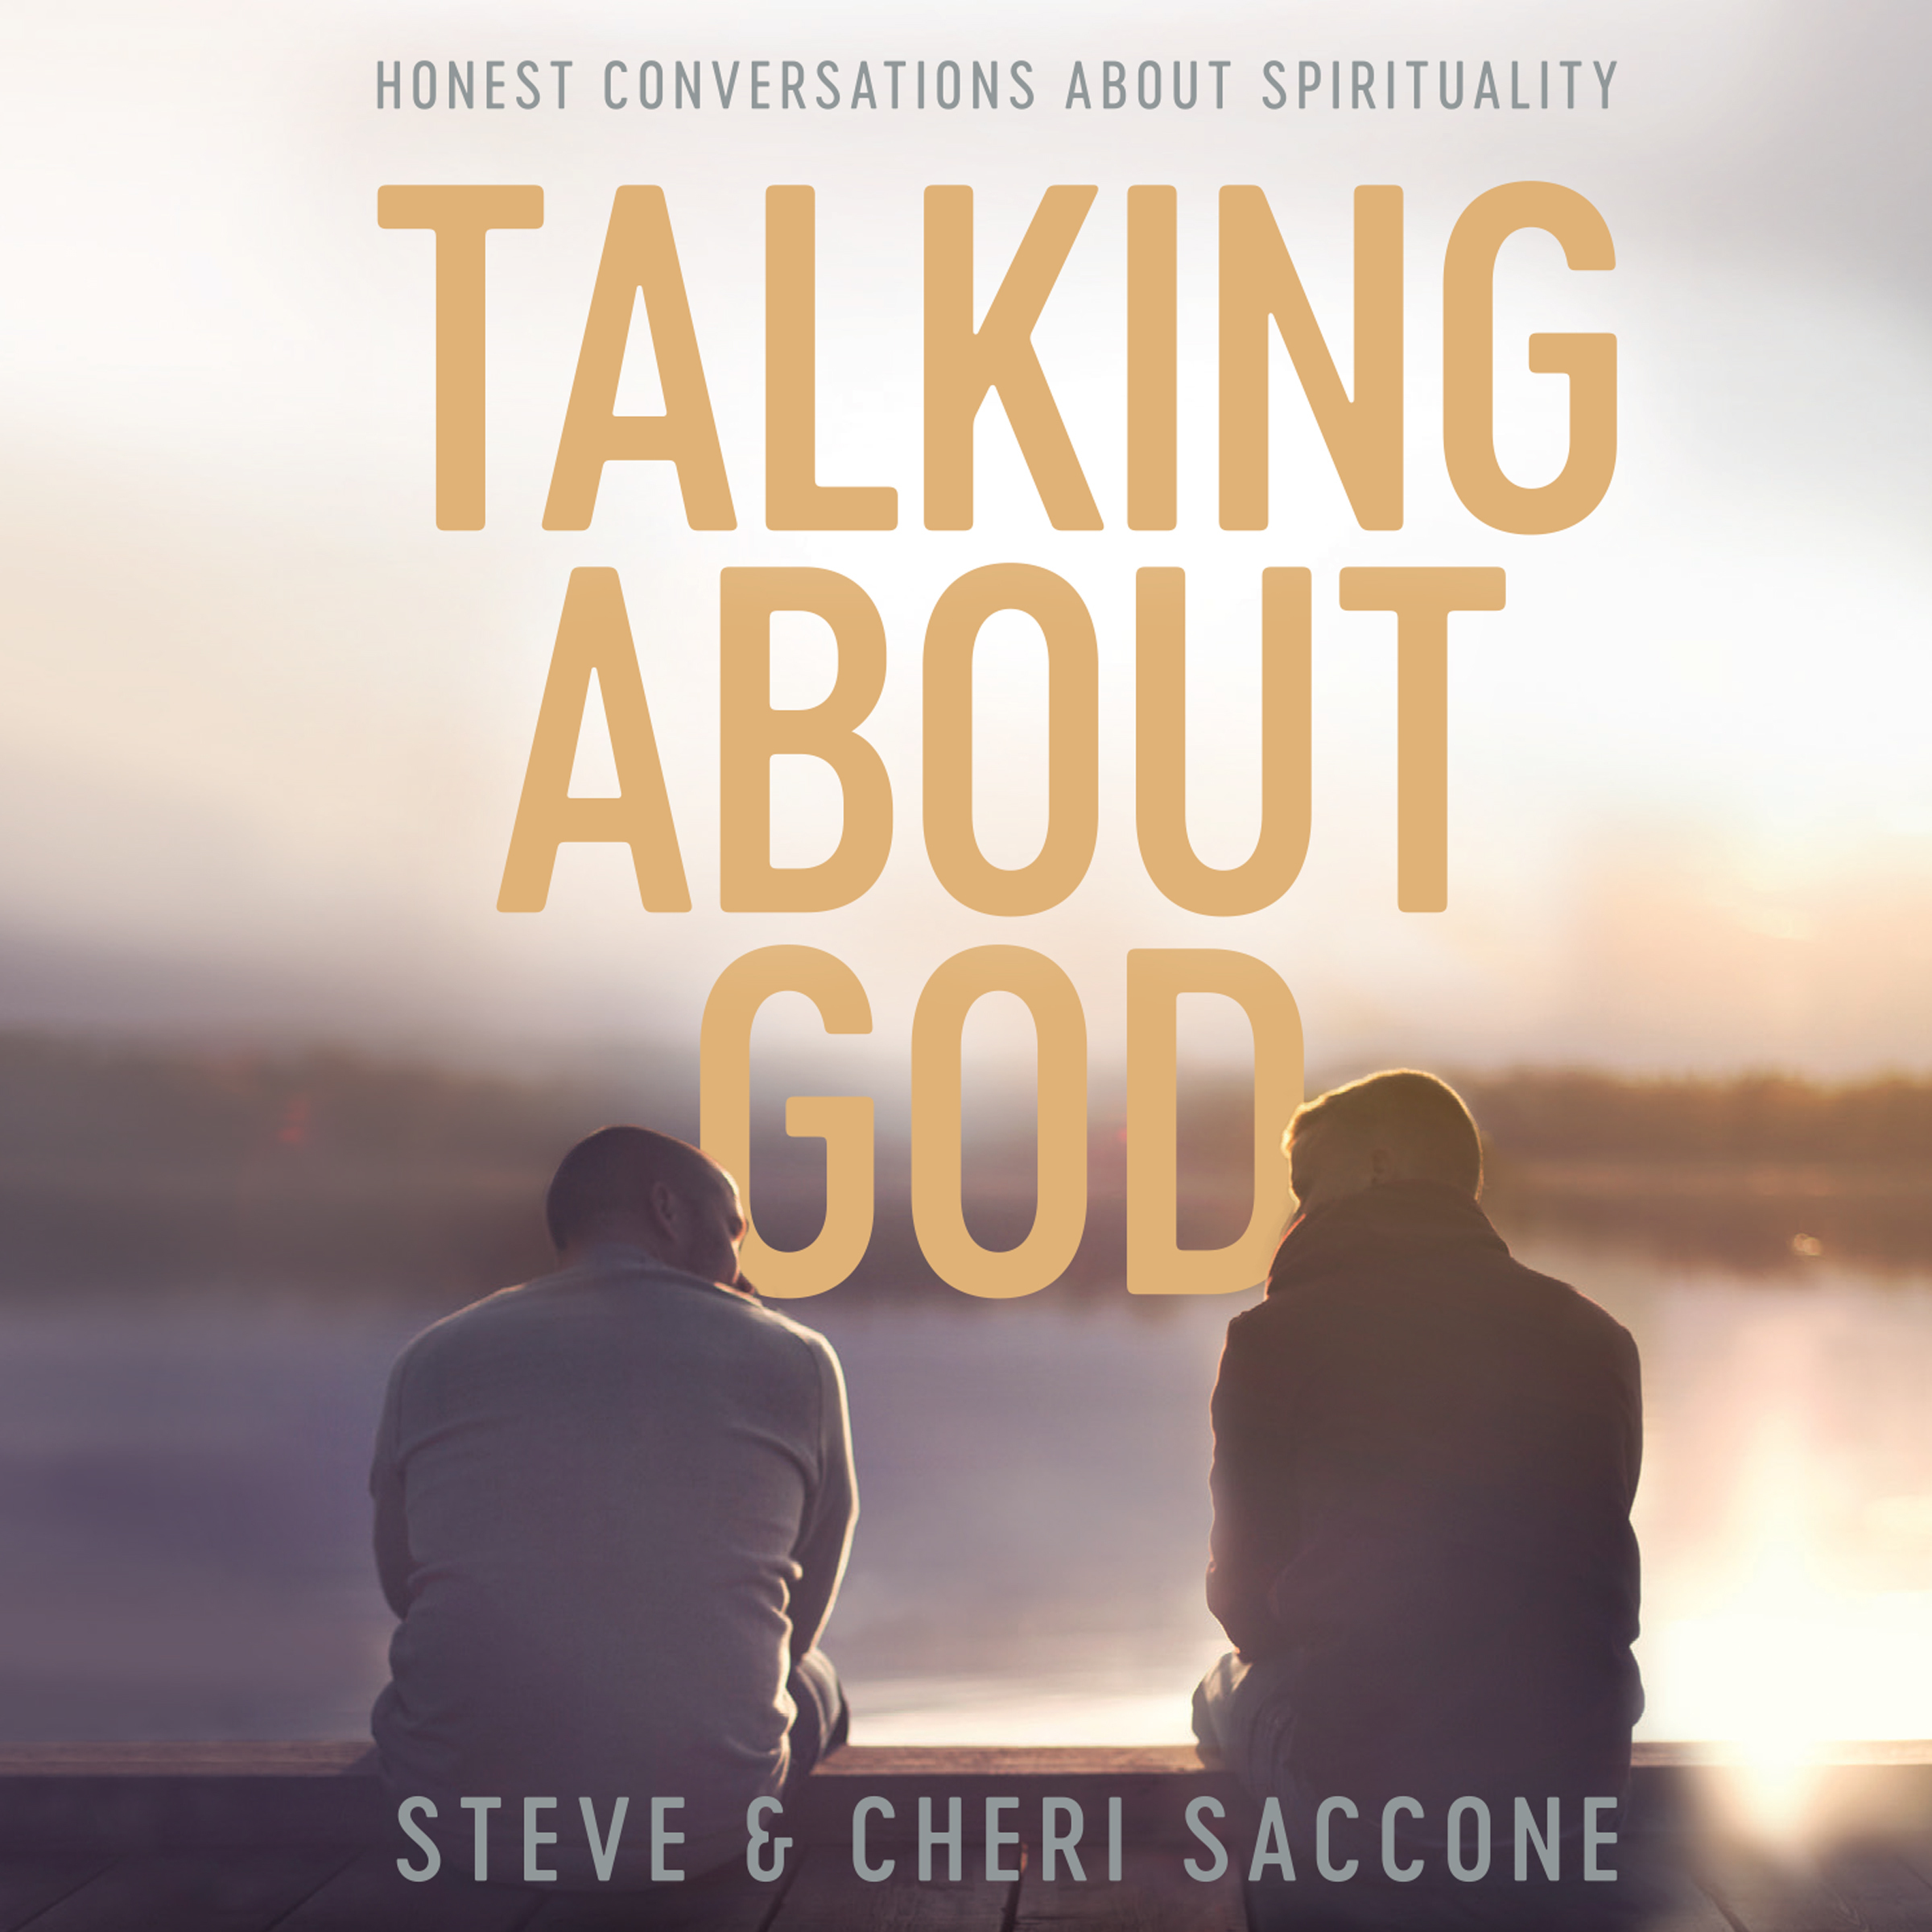 Printable Talking About God: Honest Conversations About Spirituality Audiobook Cover Art